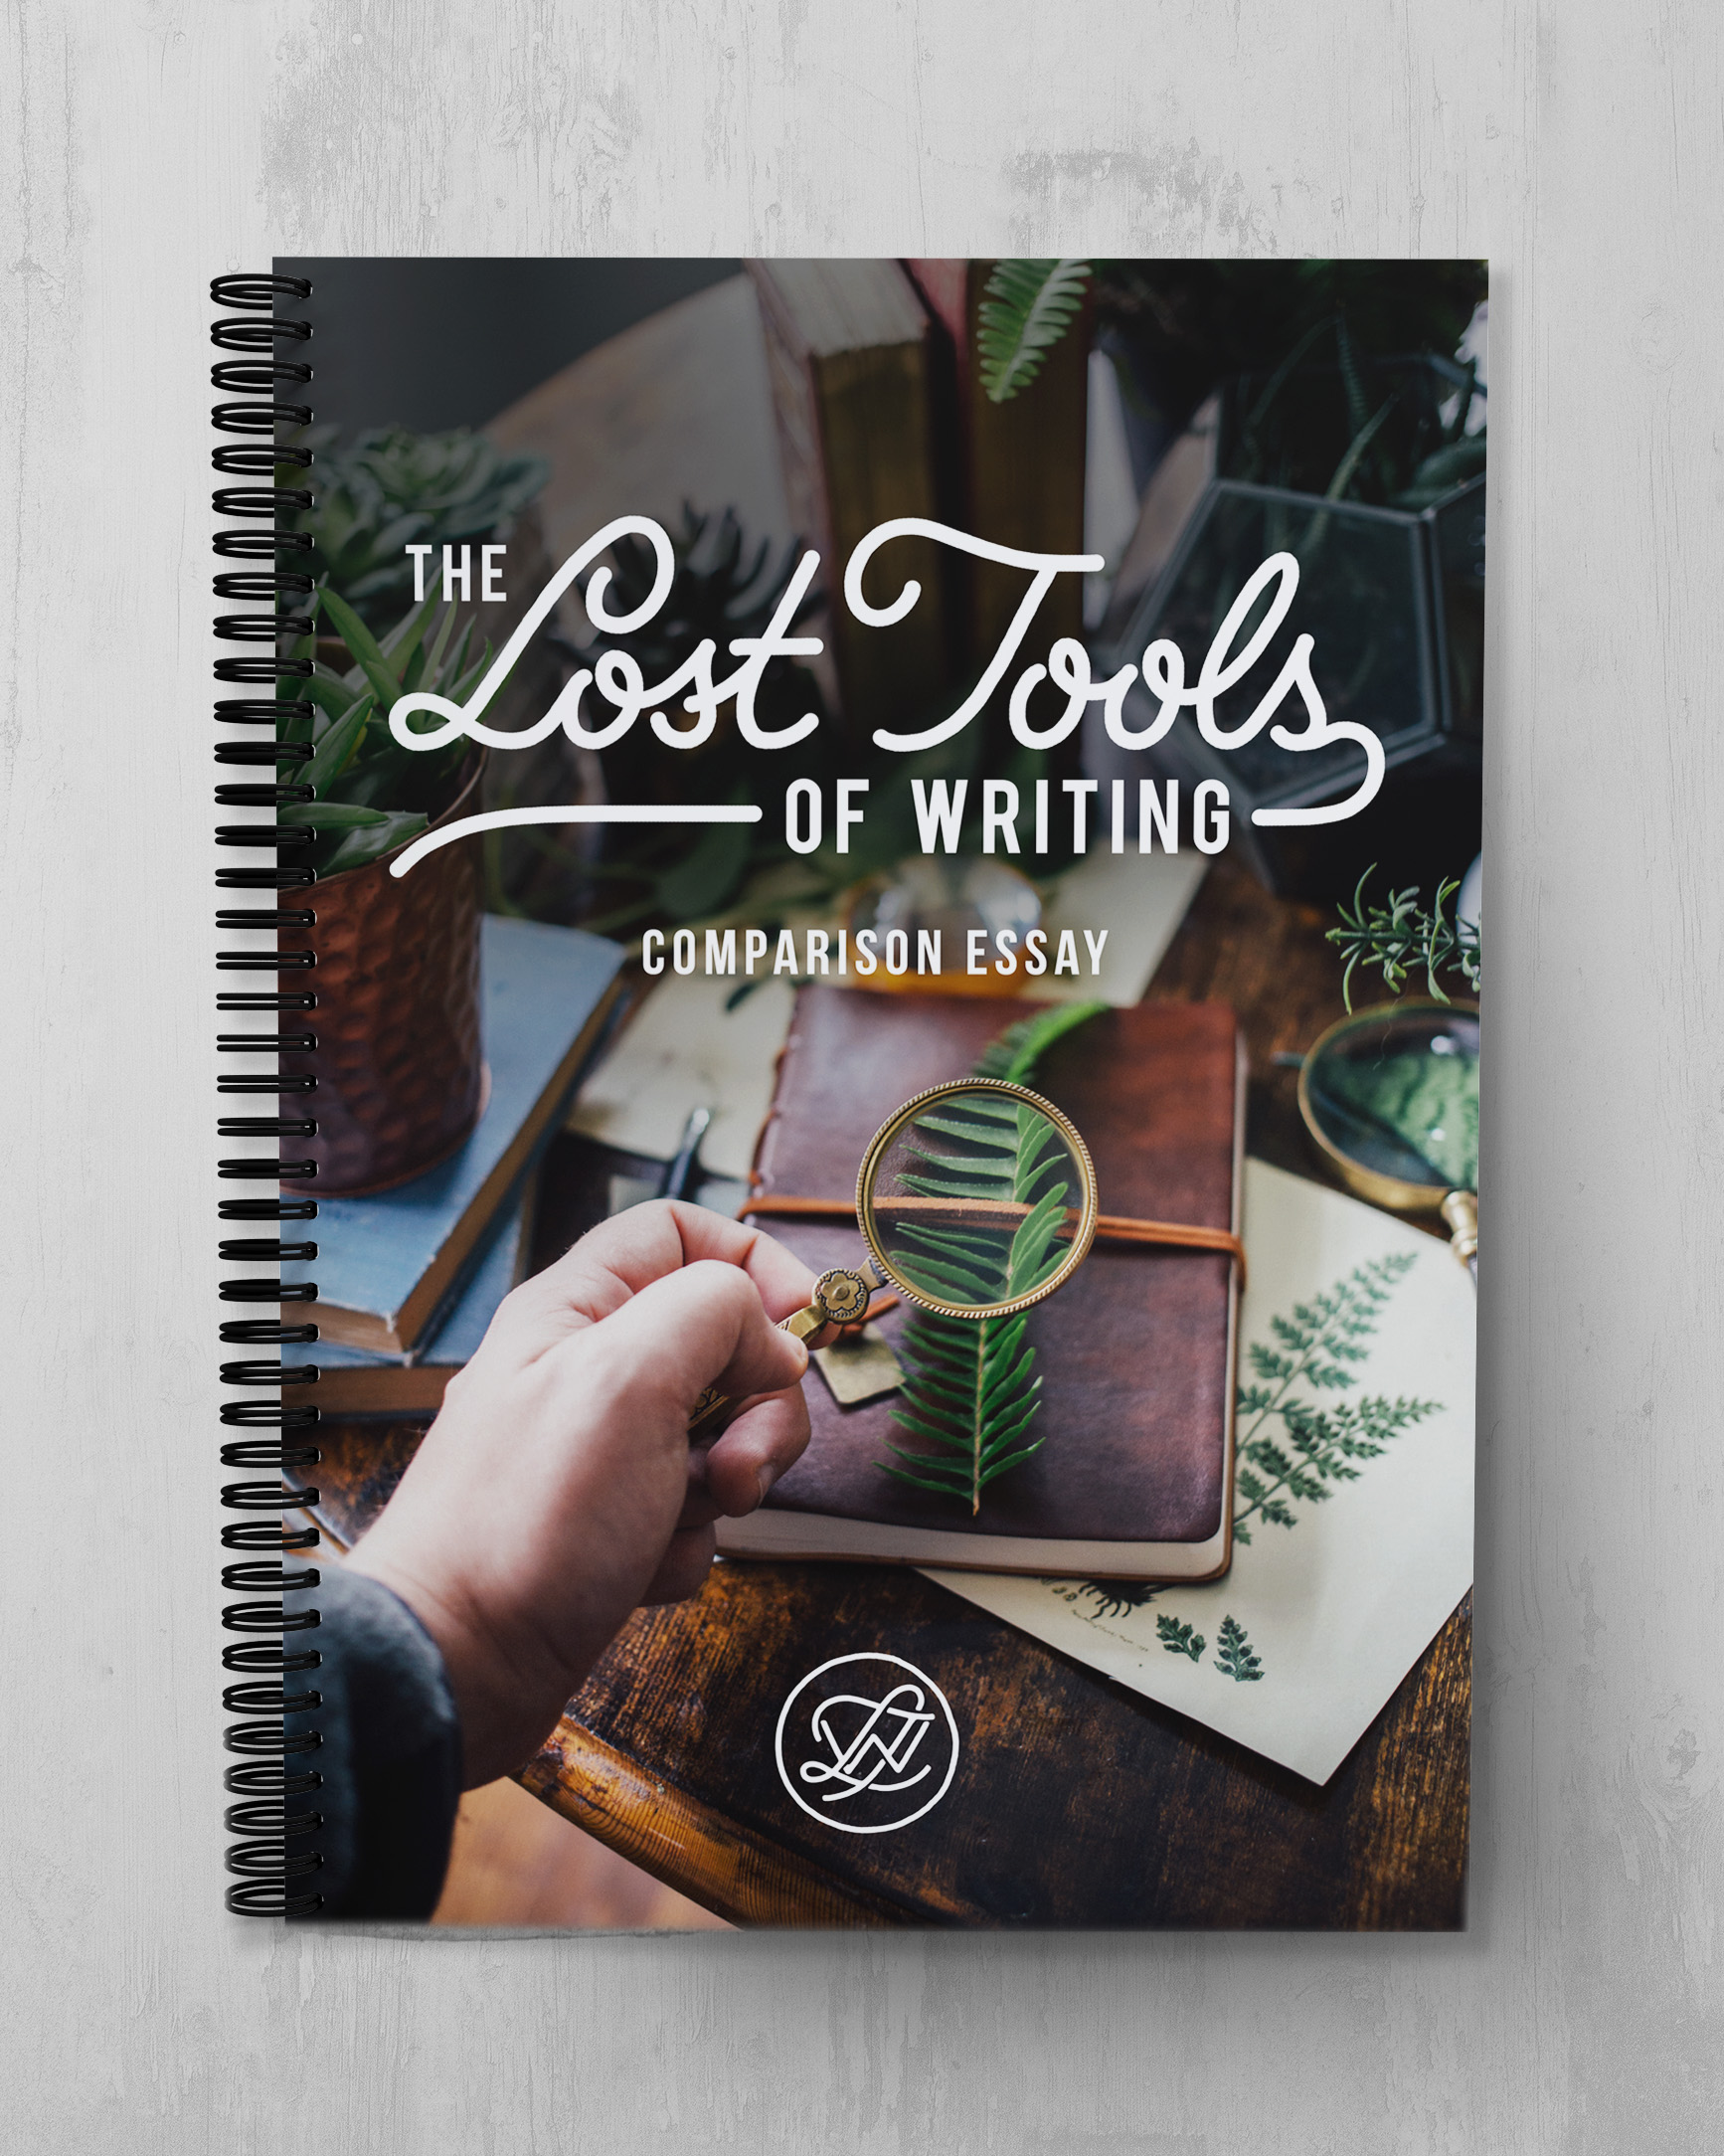 Lost Tools of Writing - Comparison Essay